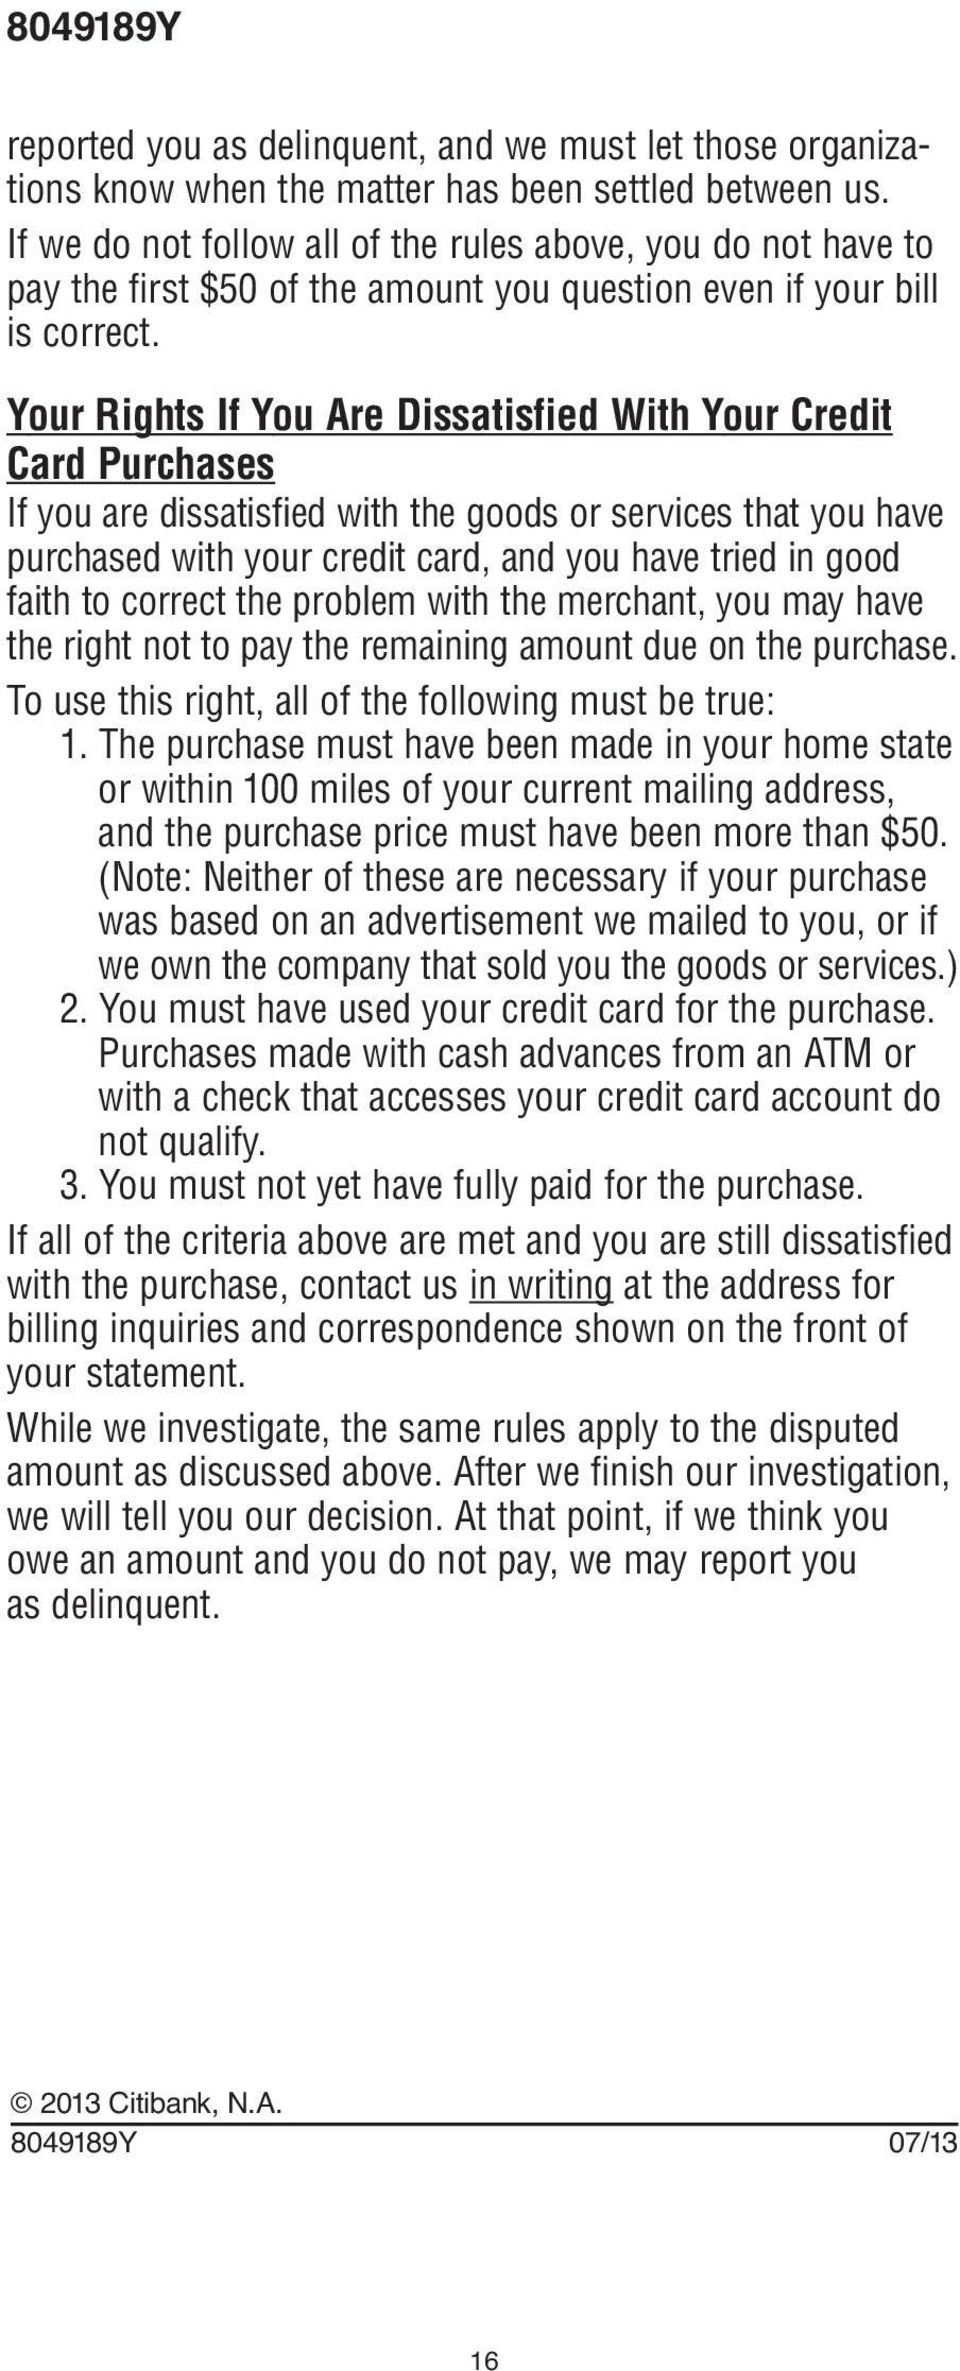 Your Rights If You Are Dissatisfied With Your Credit Card Purchases If you are dissatisfied with the goods or services that you have purchased with your credit card, and you have tried in good faith